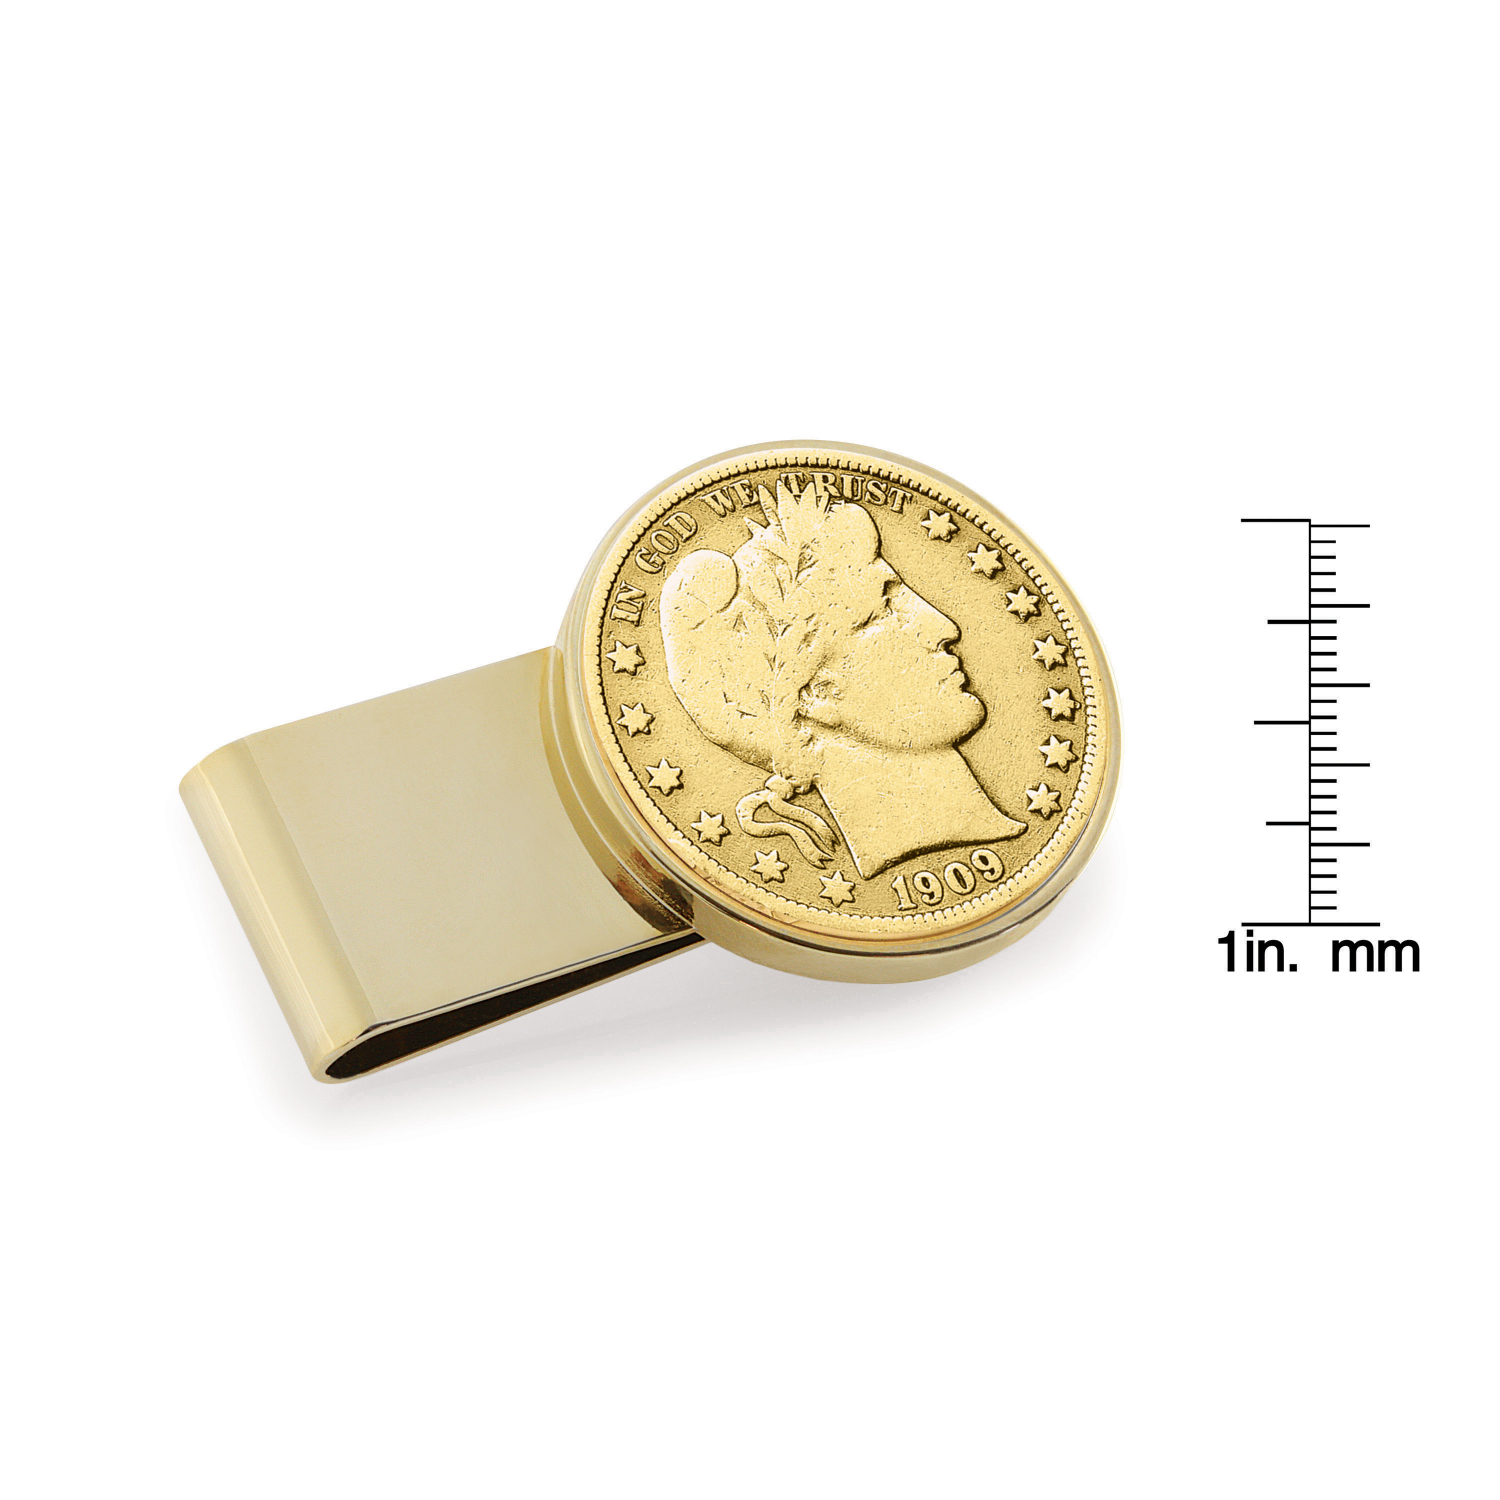 Gold-Layered Silver Barber Half Dollar Stainless Steel Goldtone Coin Money Clip